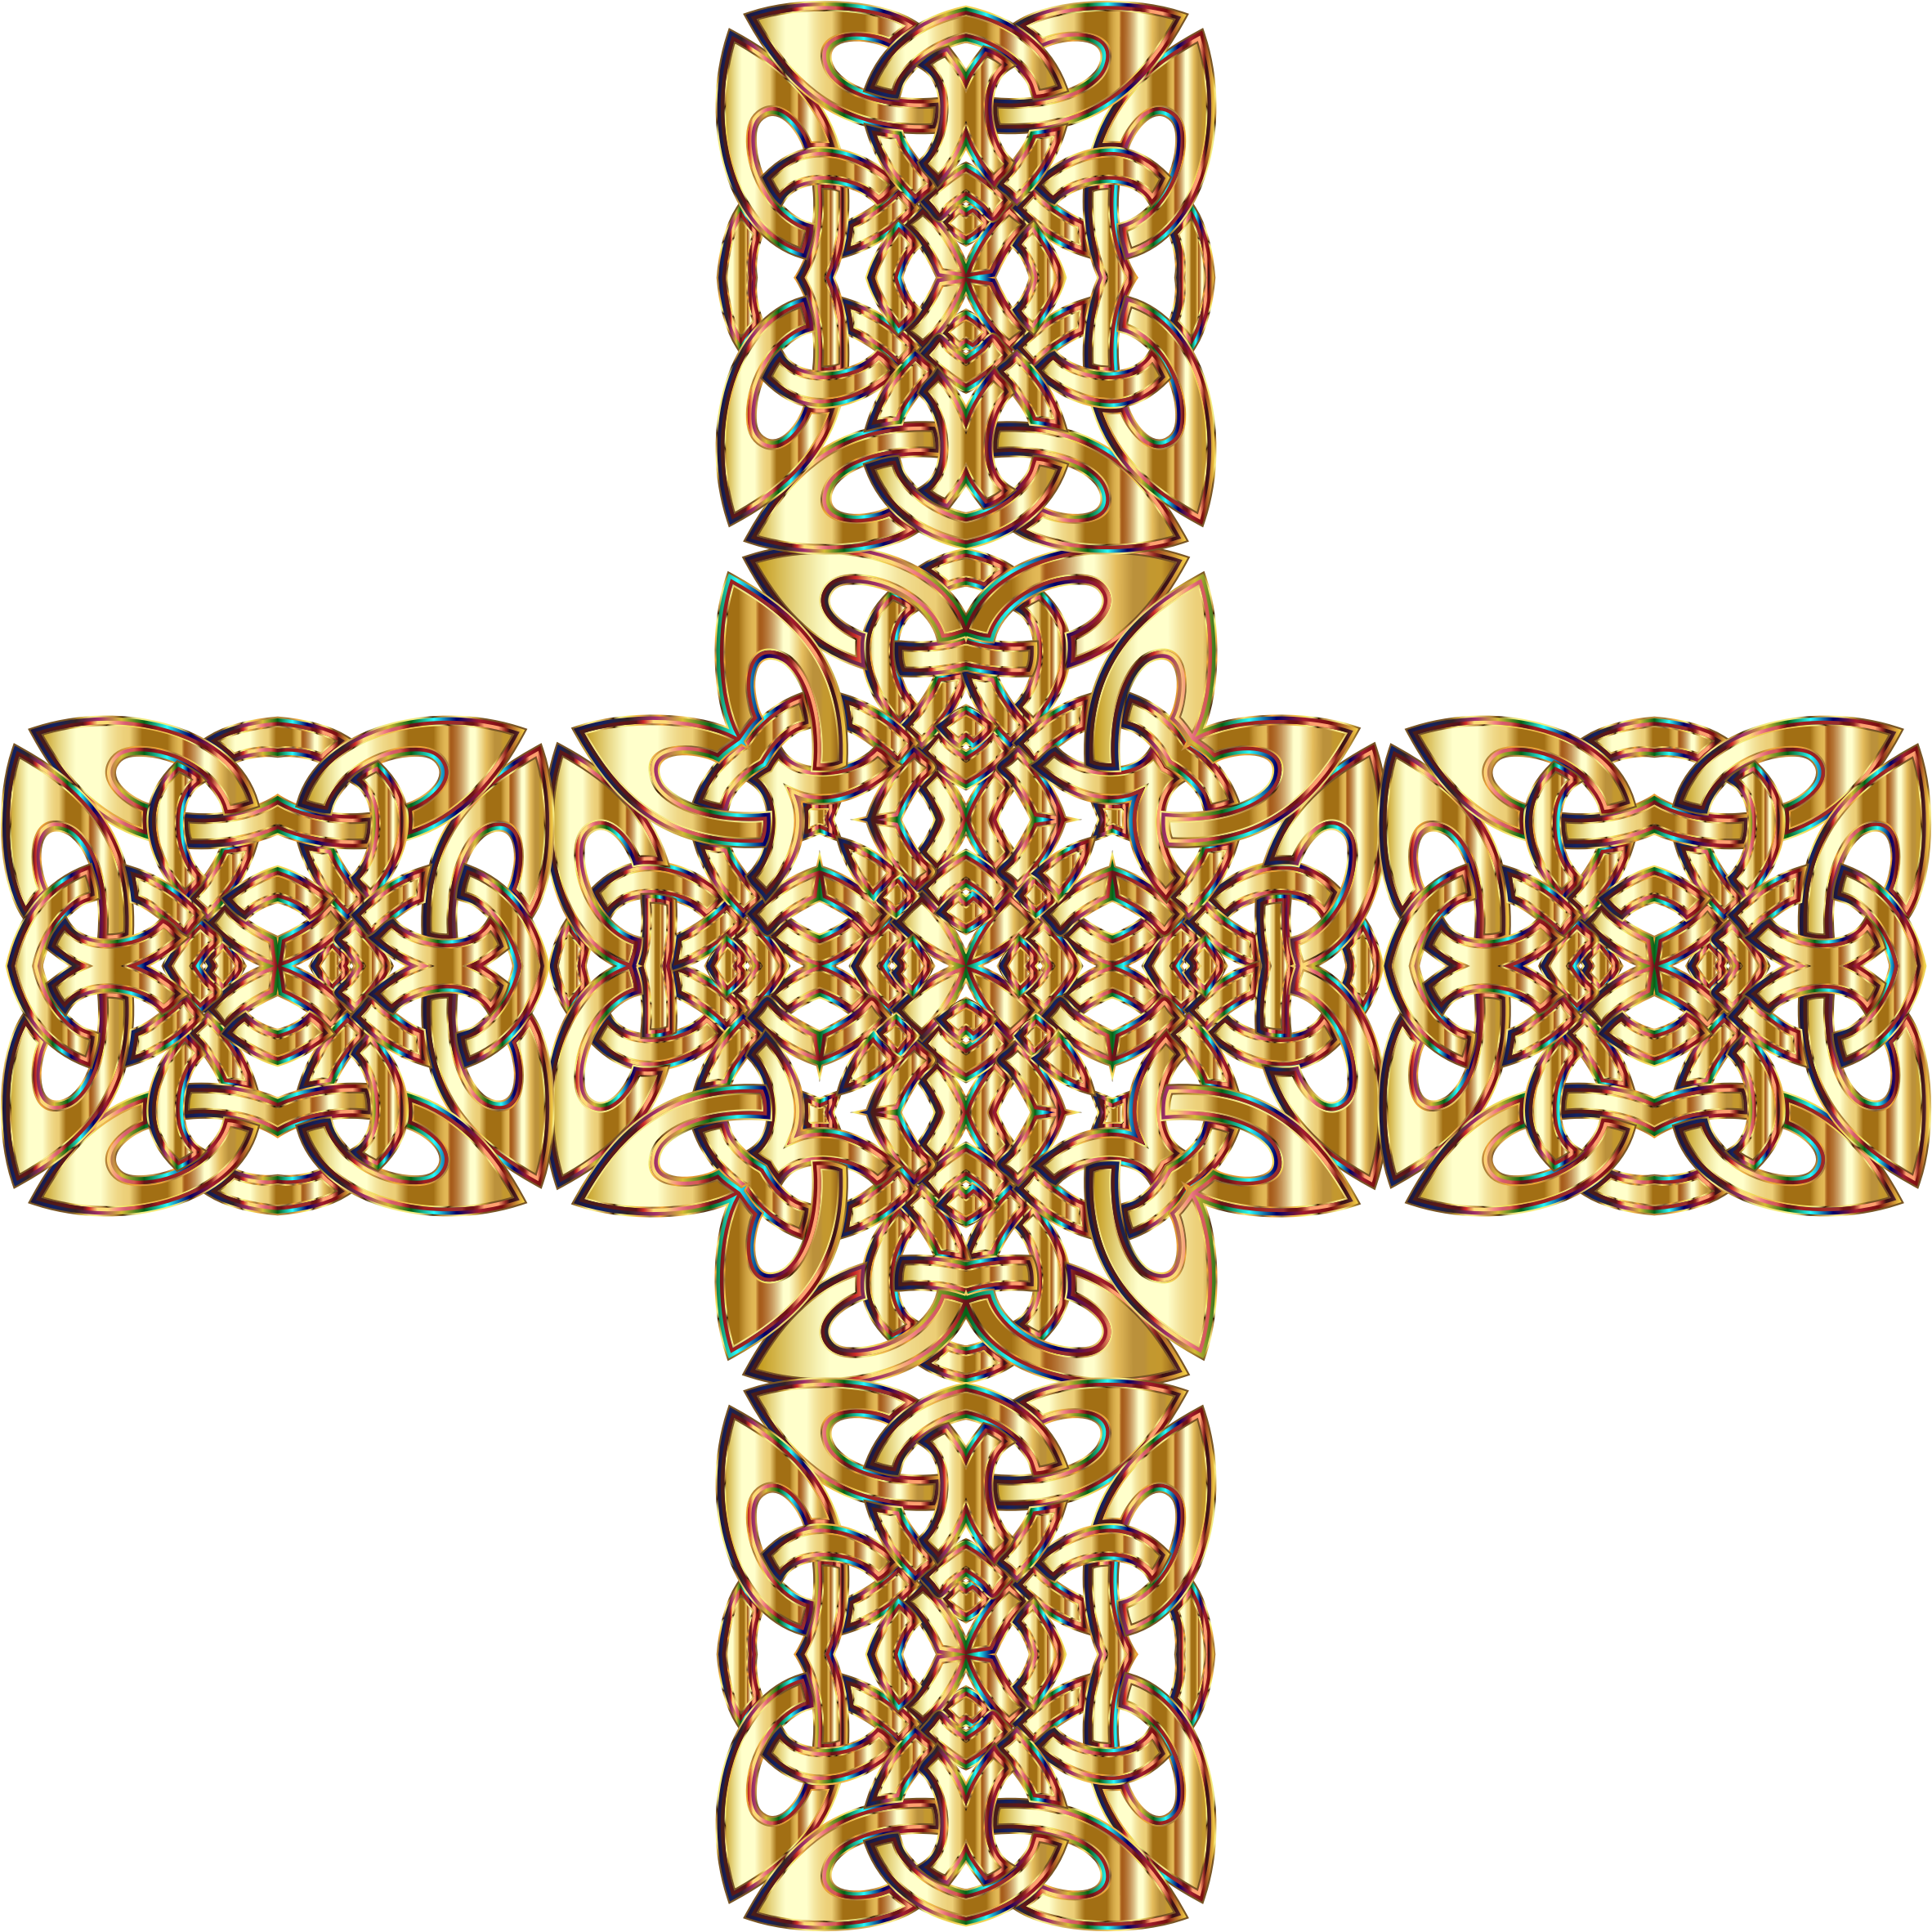 Golden Celtic Knot Cross 3 Variation 2 Without Background by GDJ